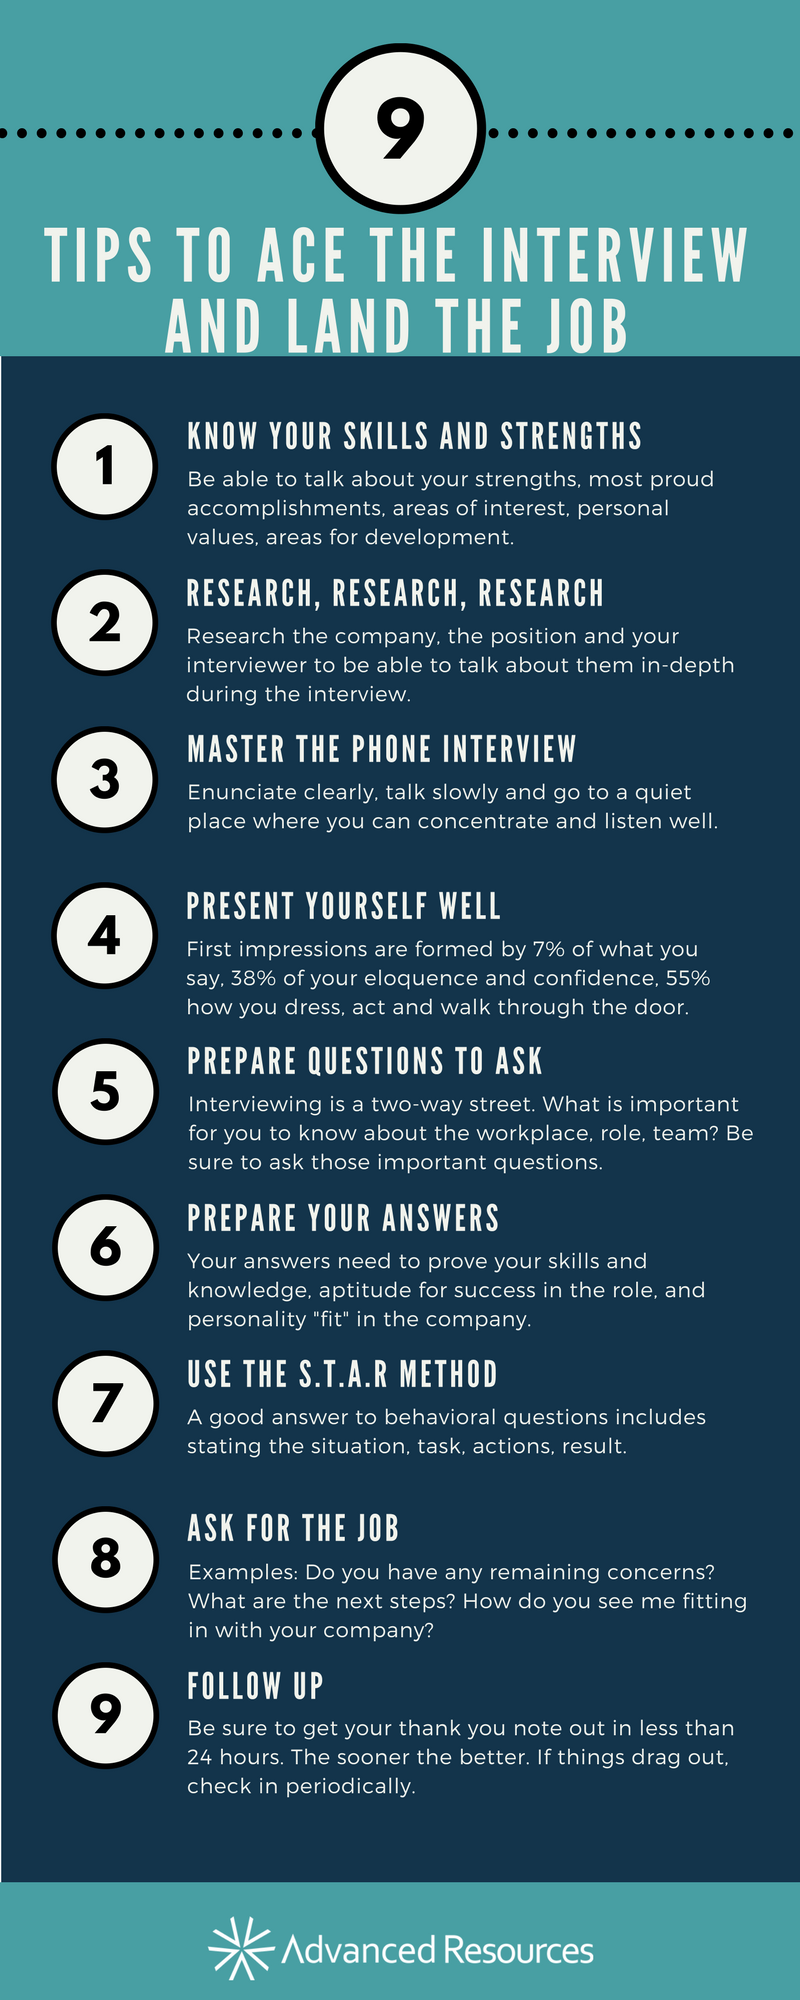 tips to ace the interview and land the job.png